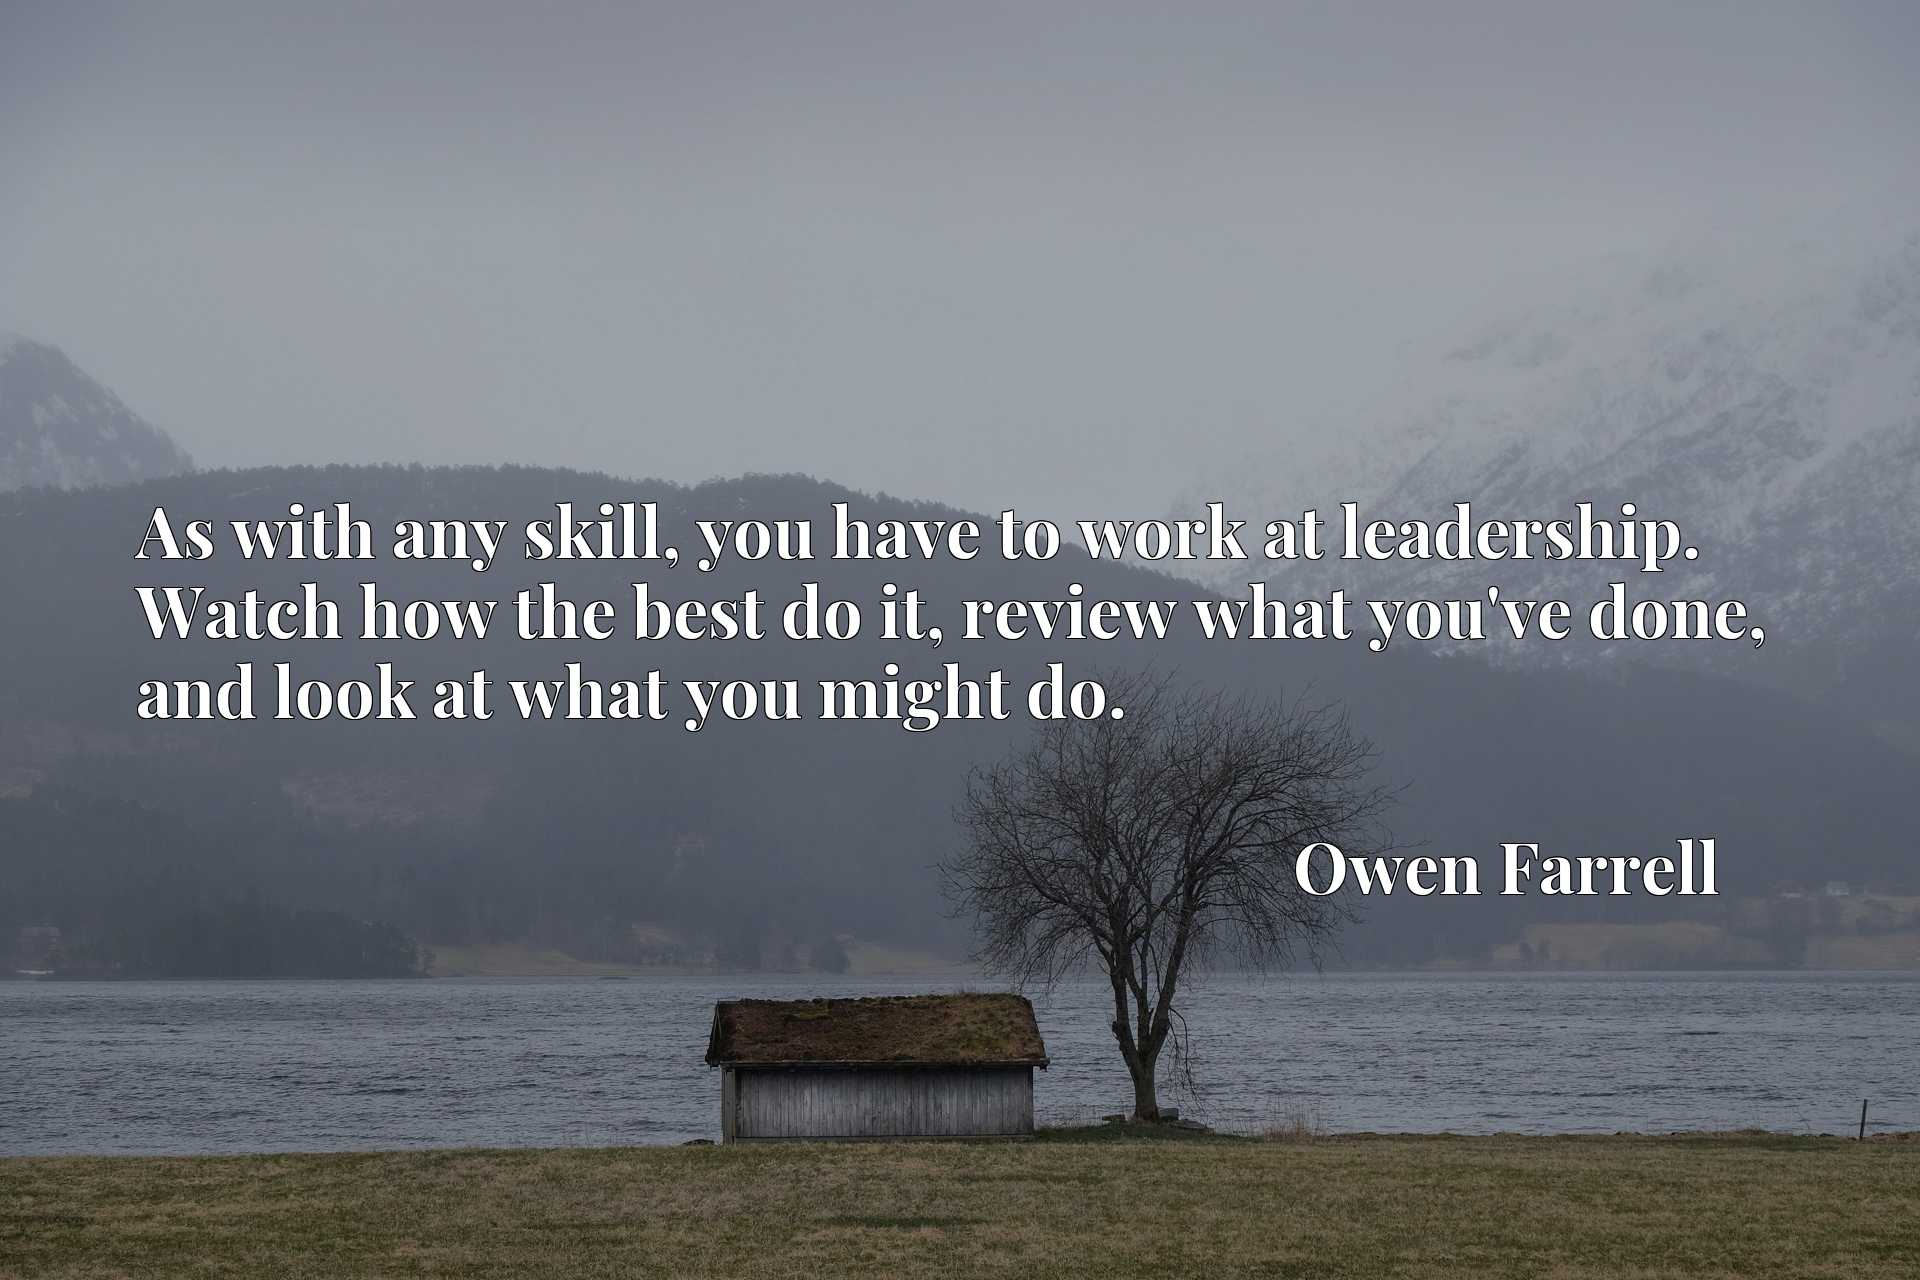 Quote Picture :As with any skill, you have to work at leadership. Watch how the best do it, review what you've done, and look at what you might do.